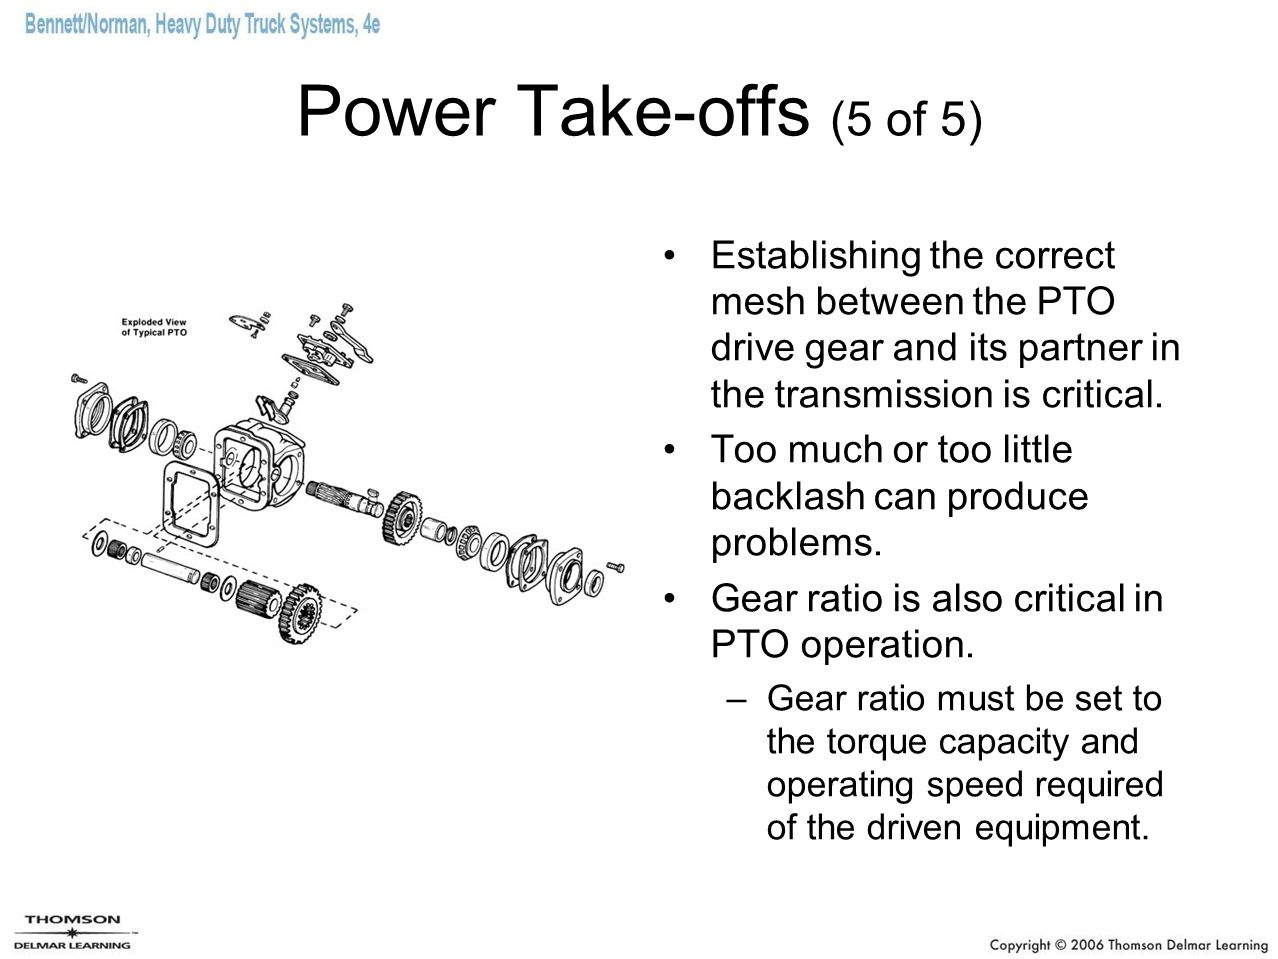 Power Take-offs (5 of 5) Establishing the correct mesh between the PTO drive gear and its partner in the transmission is critical.